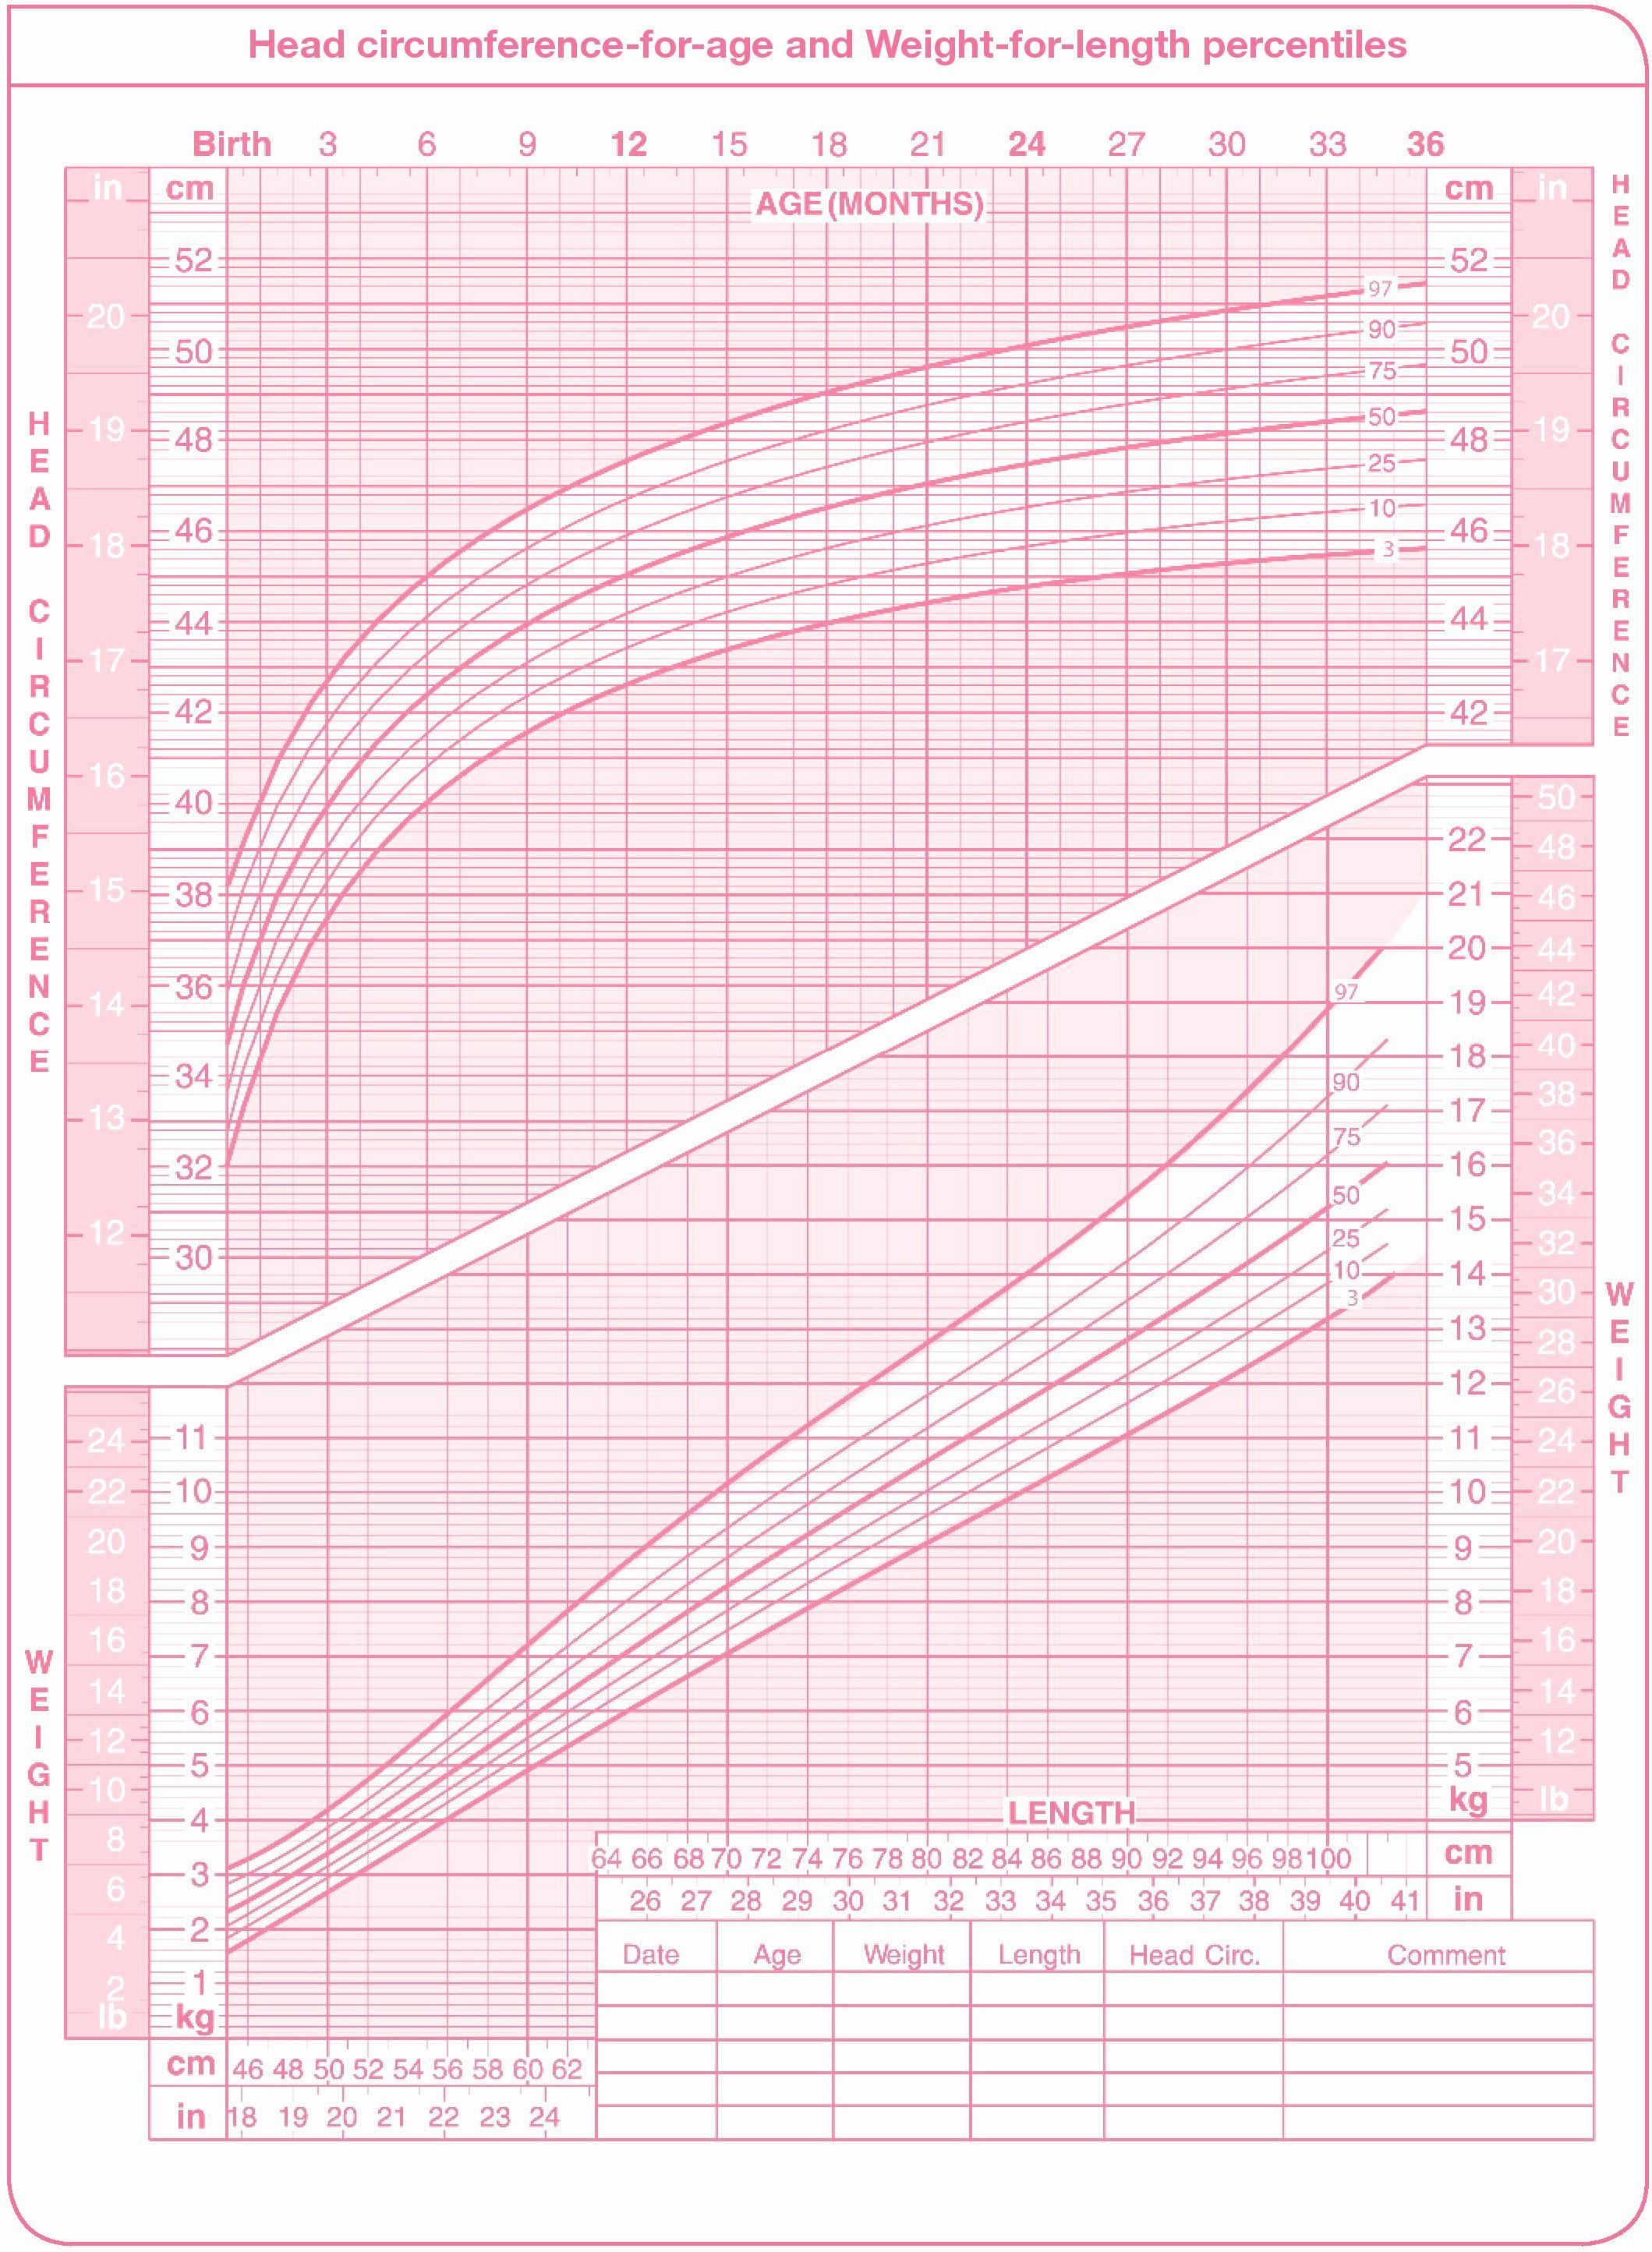 Baby Girl Growth Chart Elegant Using A Percentile Chart To Monitor Your Child S Growth Baby Girl Growth Chart Growth Chart Girl Growth Chart